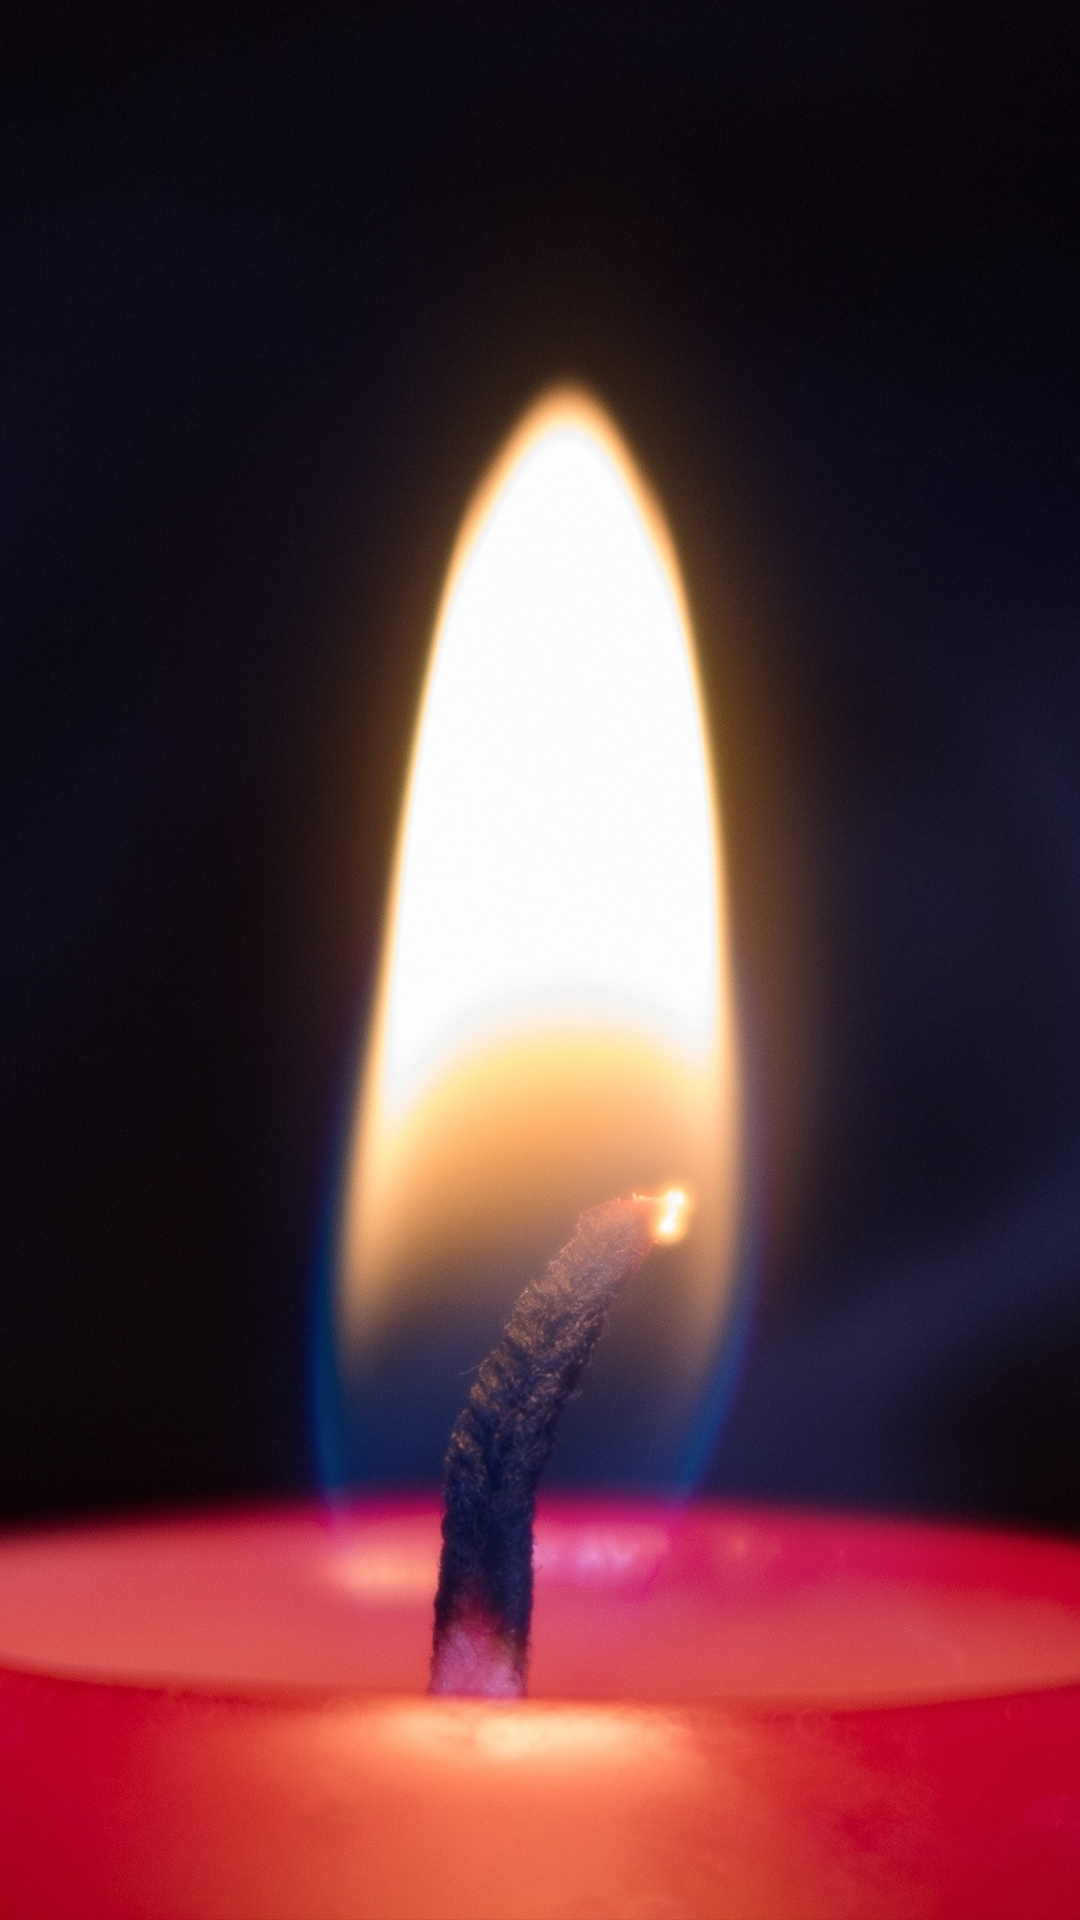 iphone wallpaper candle flame Candle